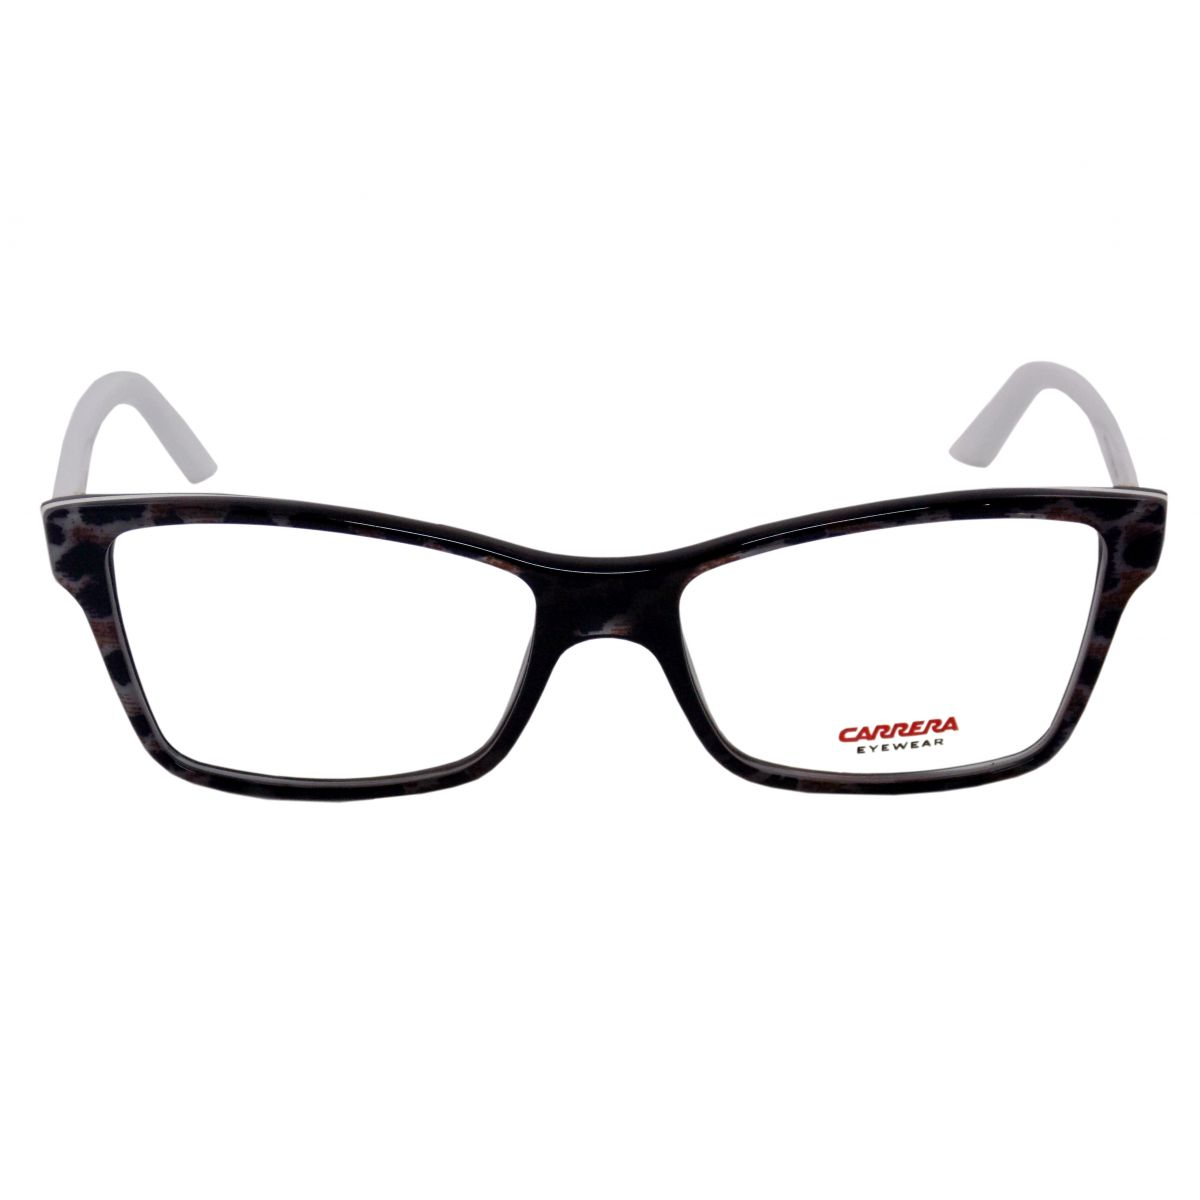 3d7ff94e2c611 Oculos Feminino Carrera - Restaurant and Palinka Bar